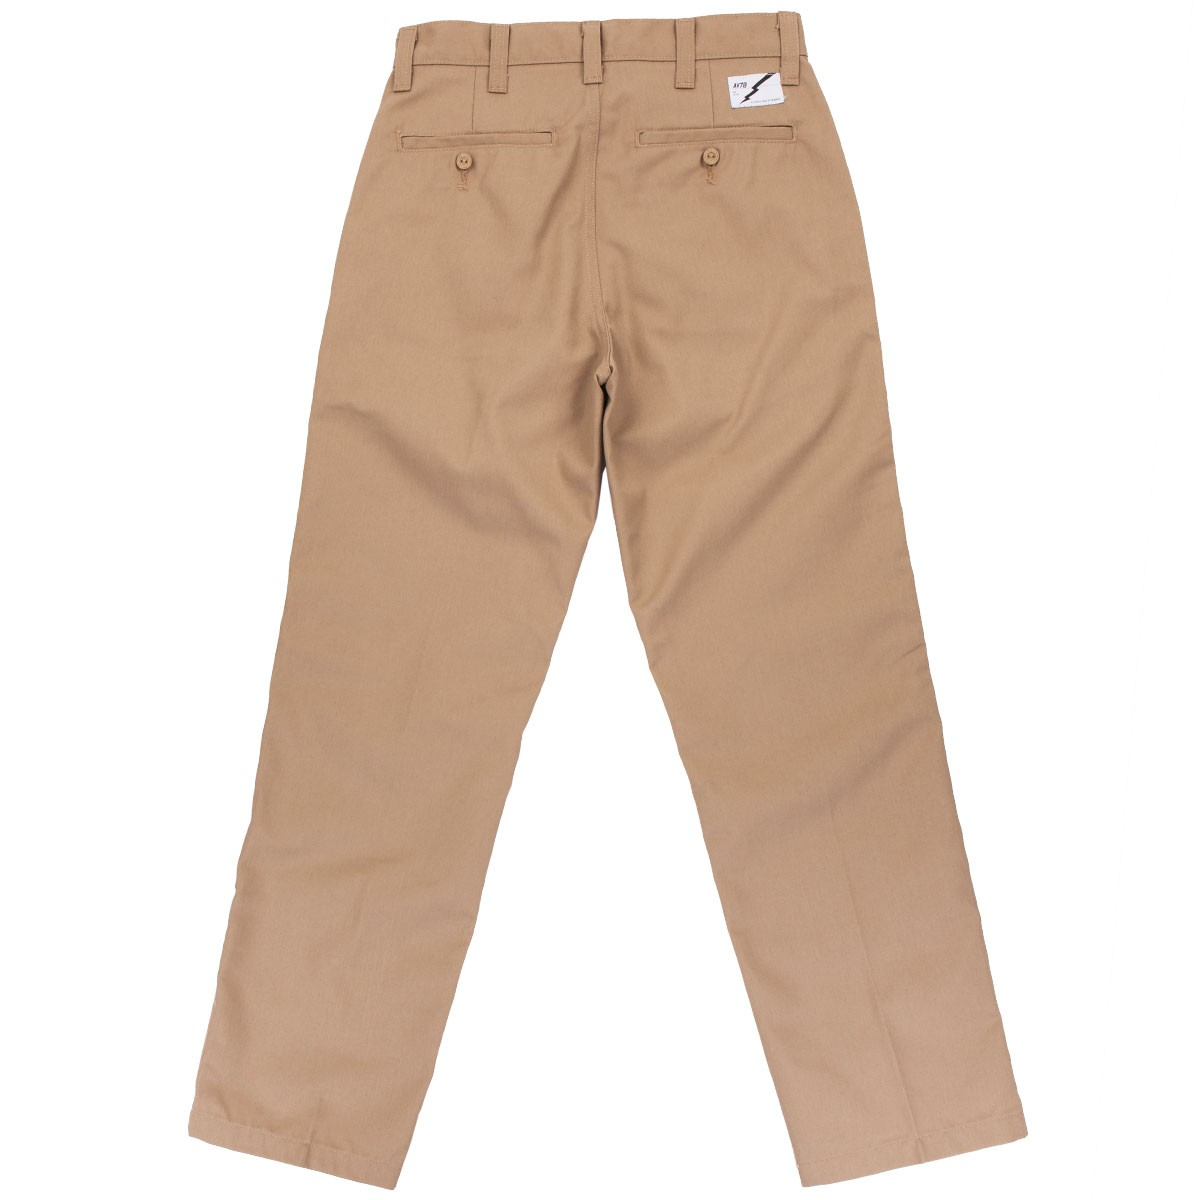 best khaki pants for work - Pi Pants